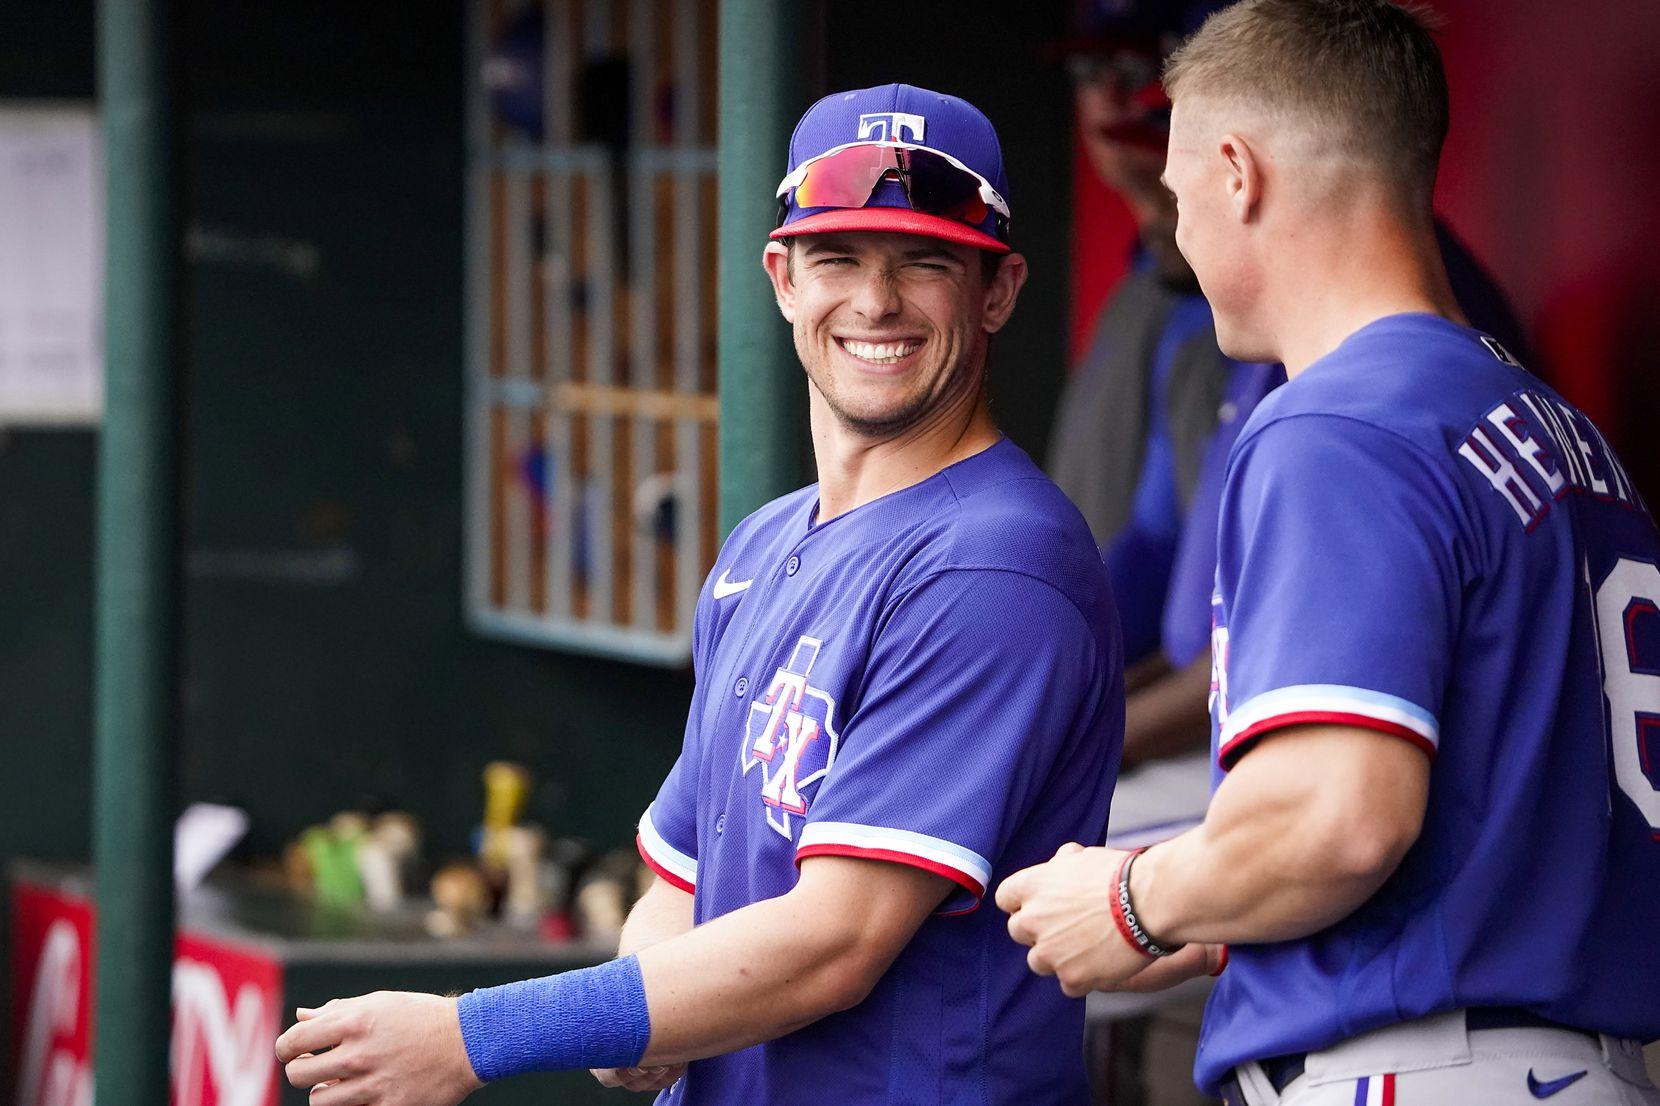 Texas Rangers infielder/outfielder Nick Solak laughs with outfielder Scott Heineman in the dugout during the fourth inning of a spring training game against the Los Angeles Angels at Tempe Diablo Stadium on Friday, Feb. 28, 2020, in Tempe, Ariz.